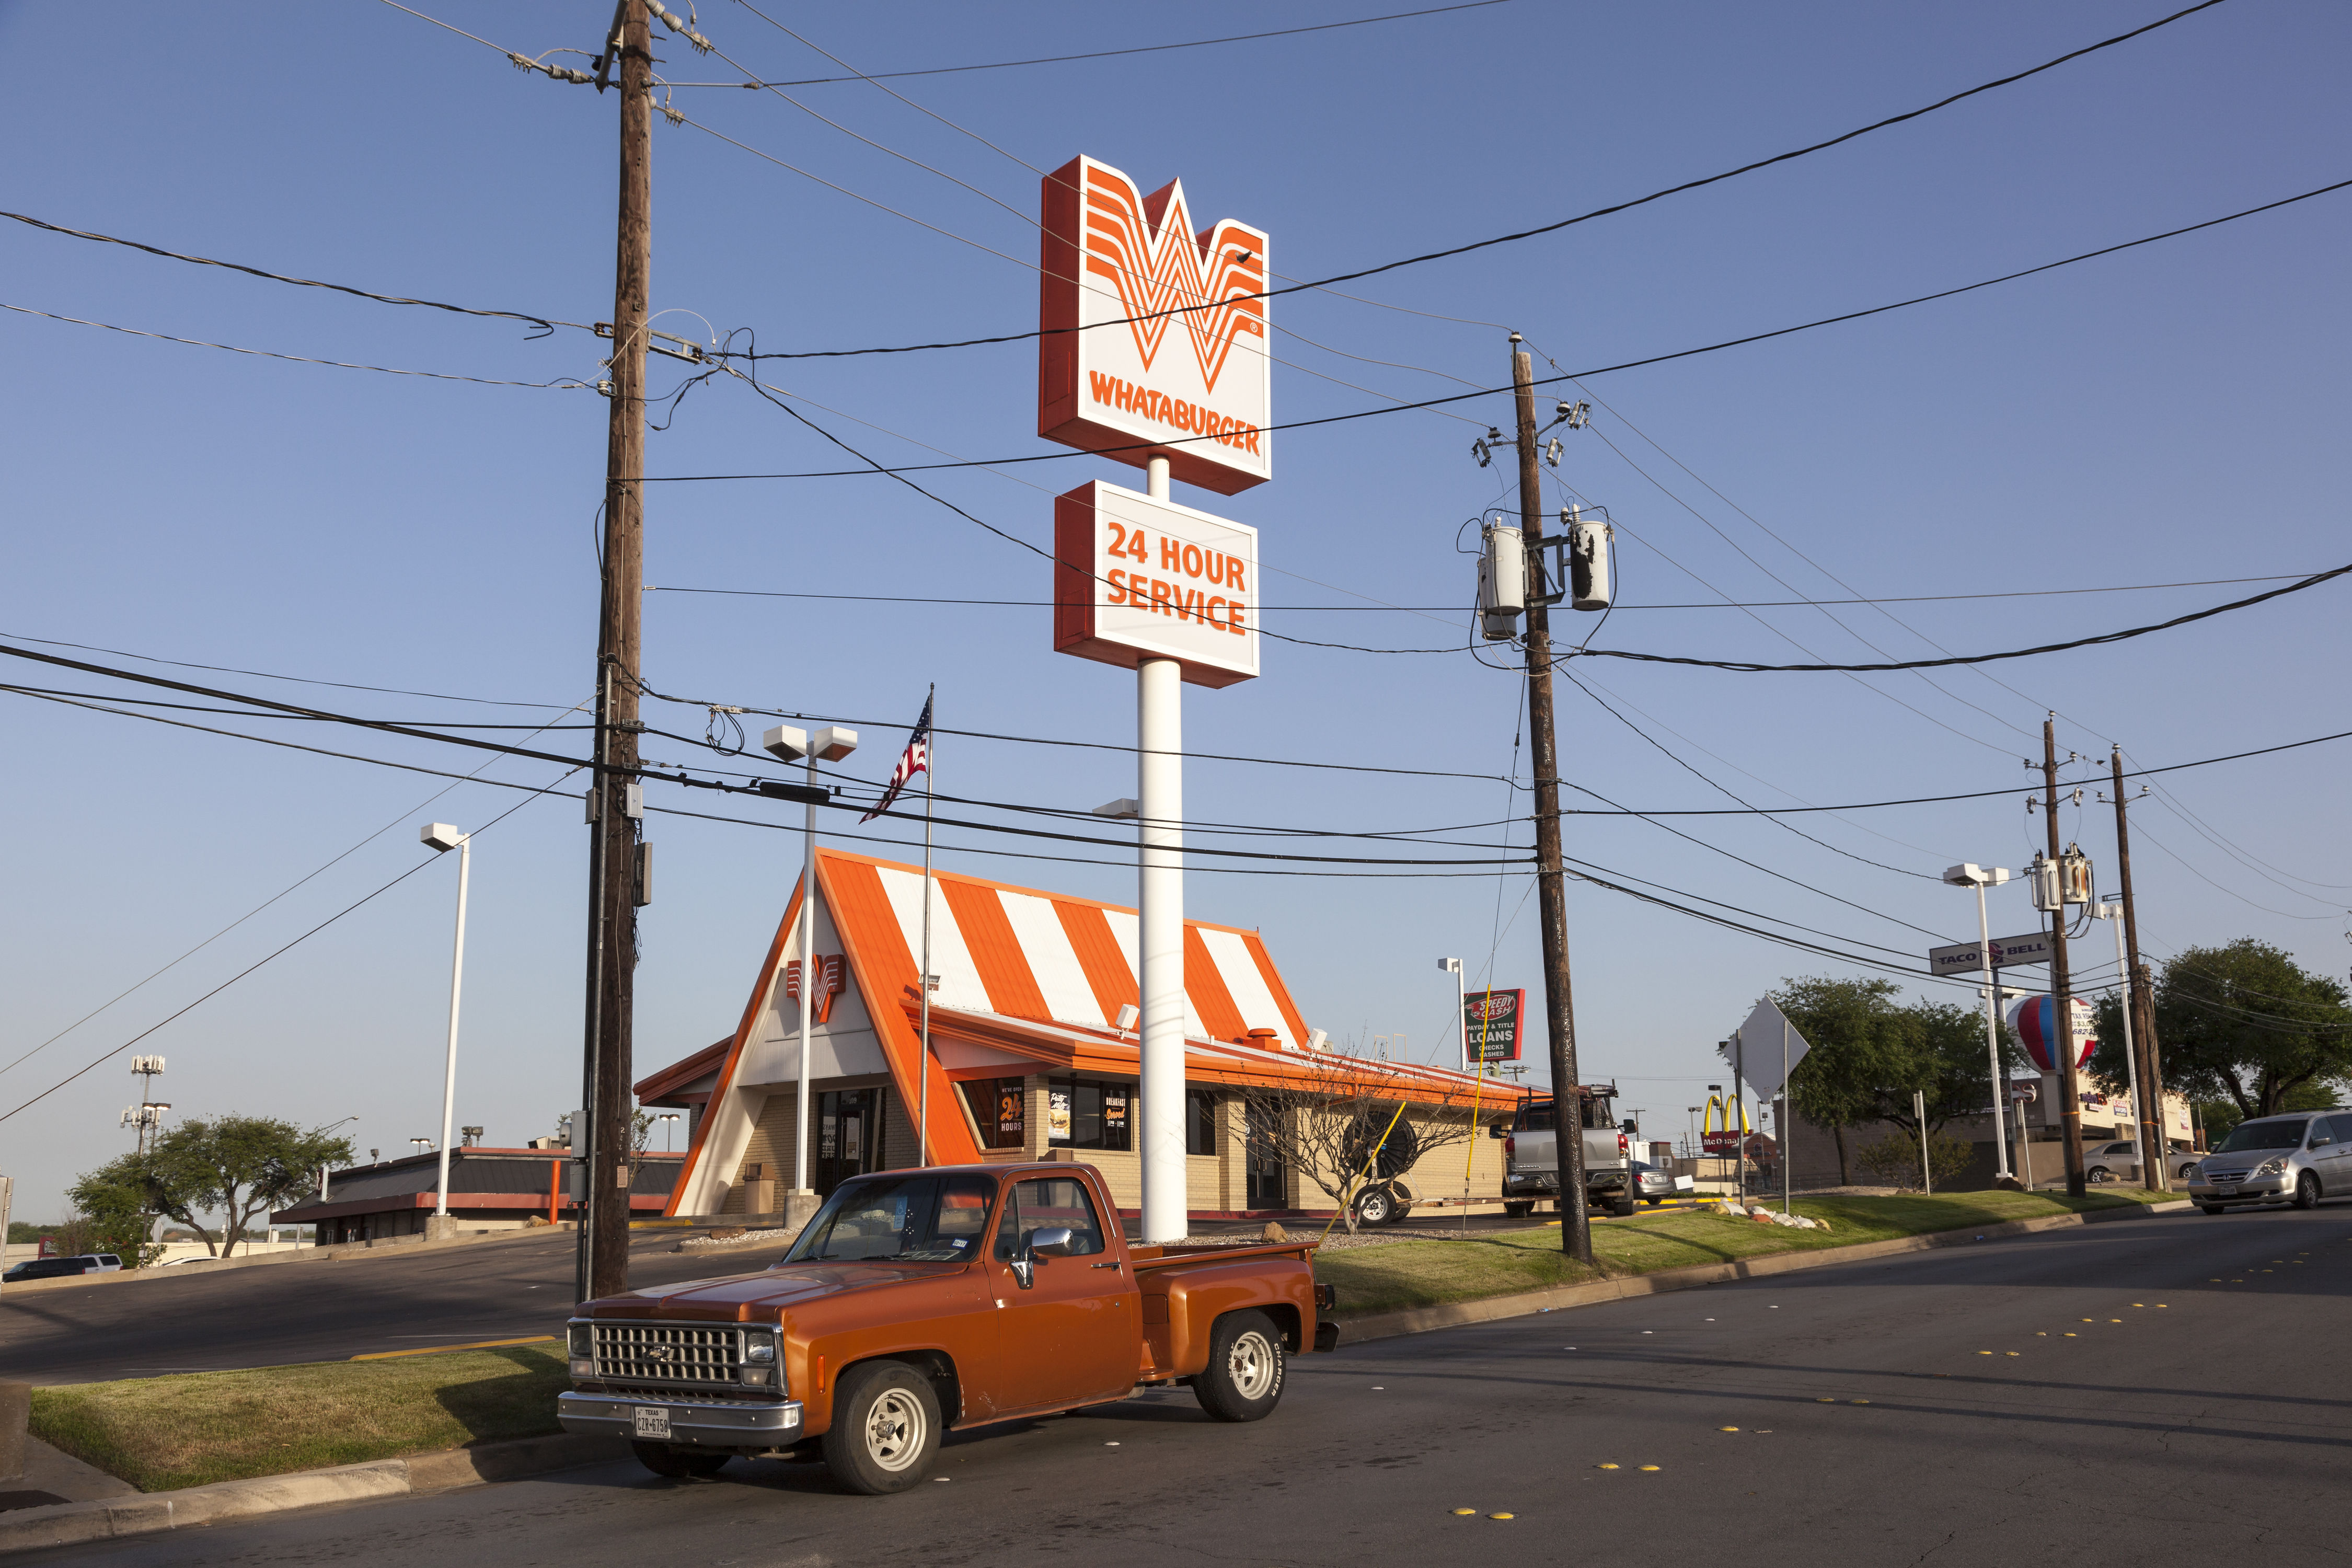 Do Texans Really Prefer In-N-Out Burger to Whataburger?